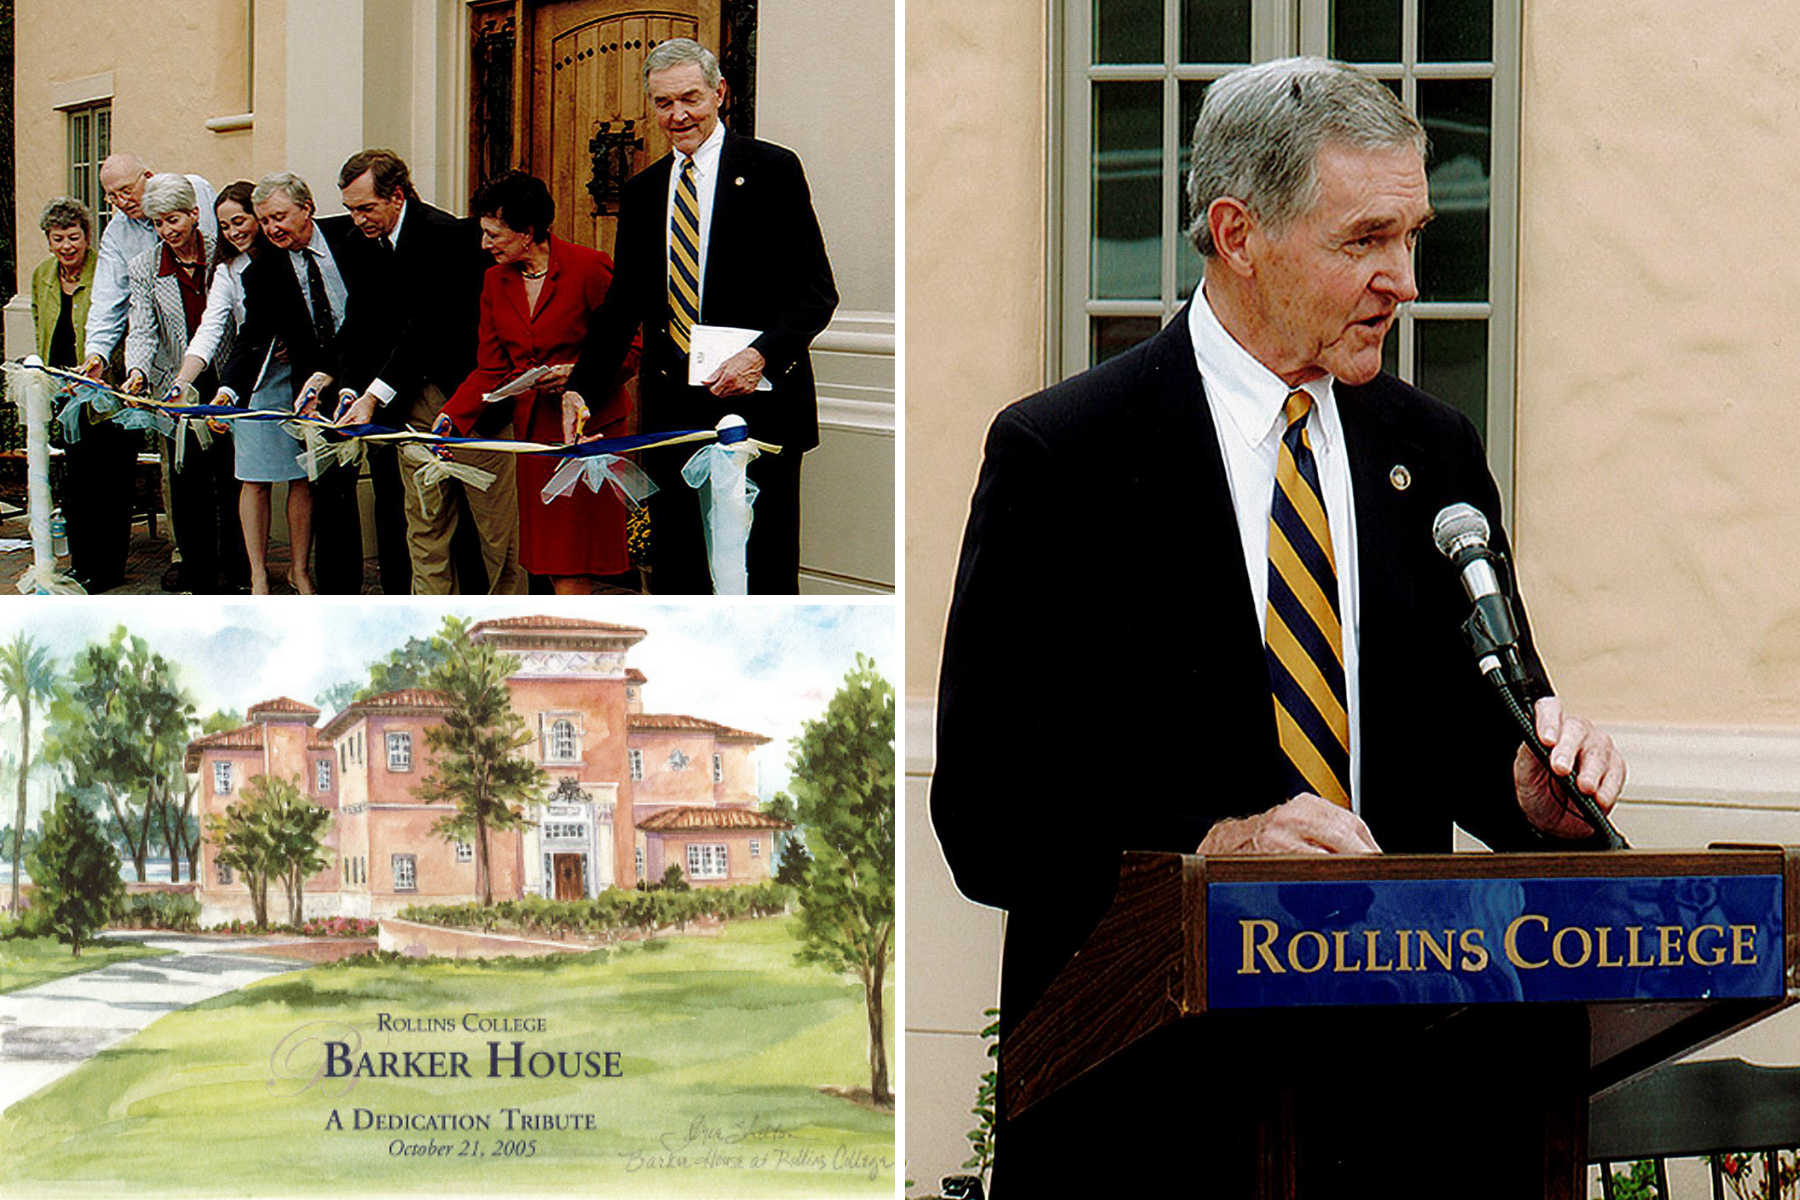 The dedication on campus of the Barker House, named after Frank Barker, where the Rollins president and his family live.